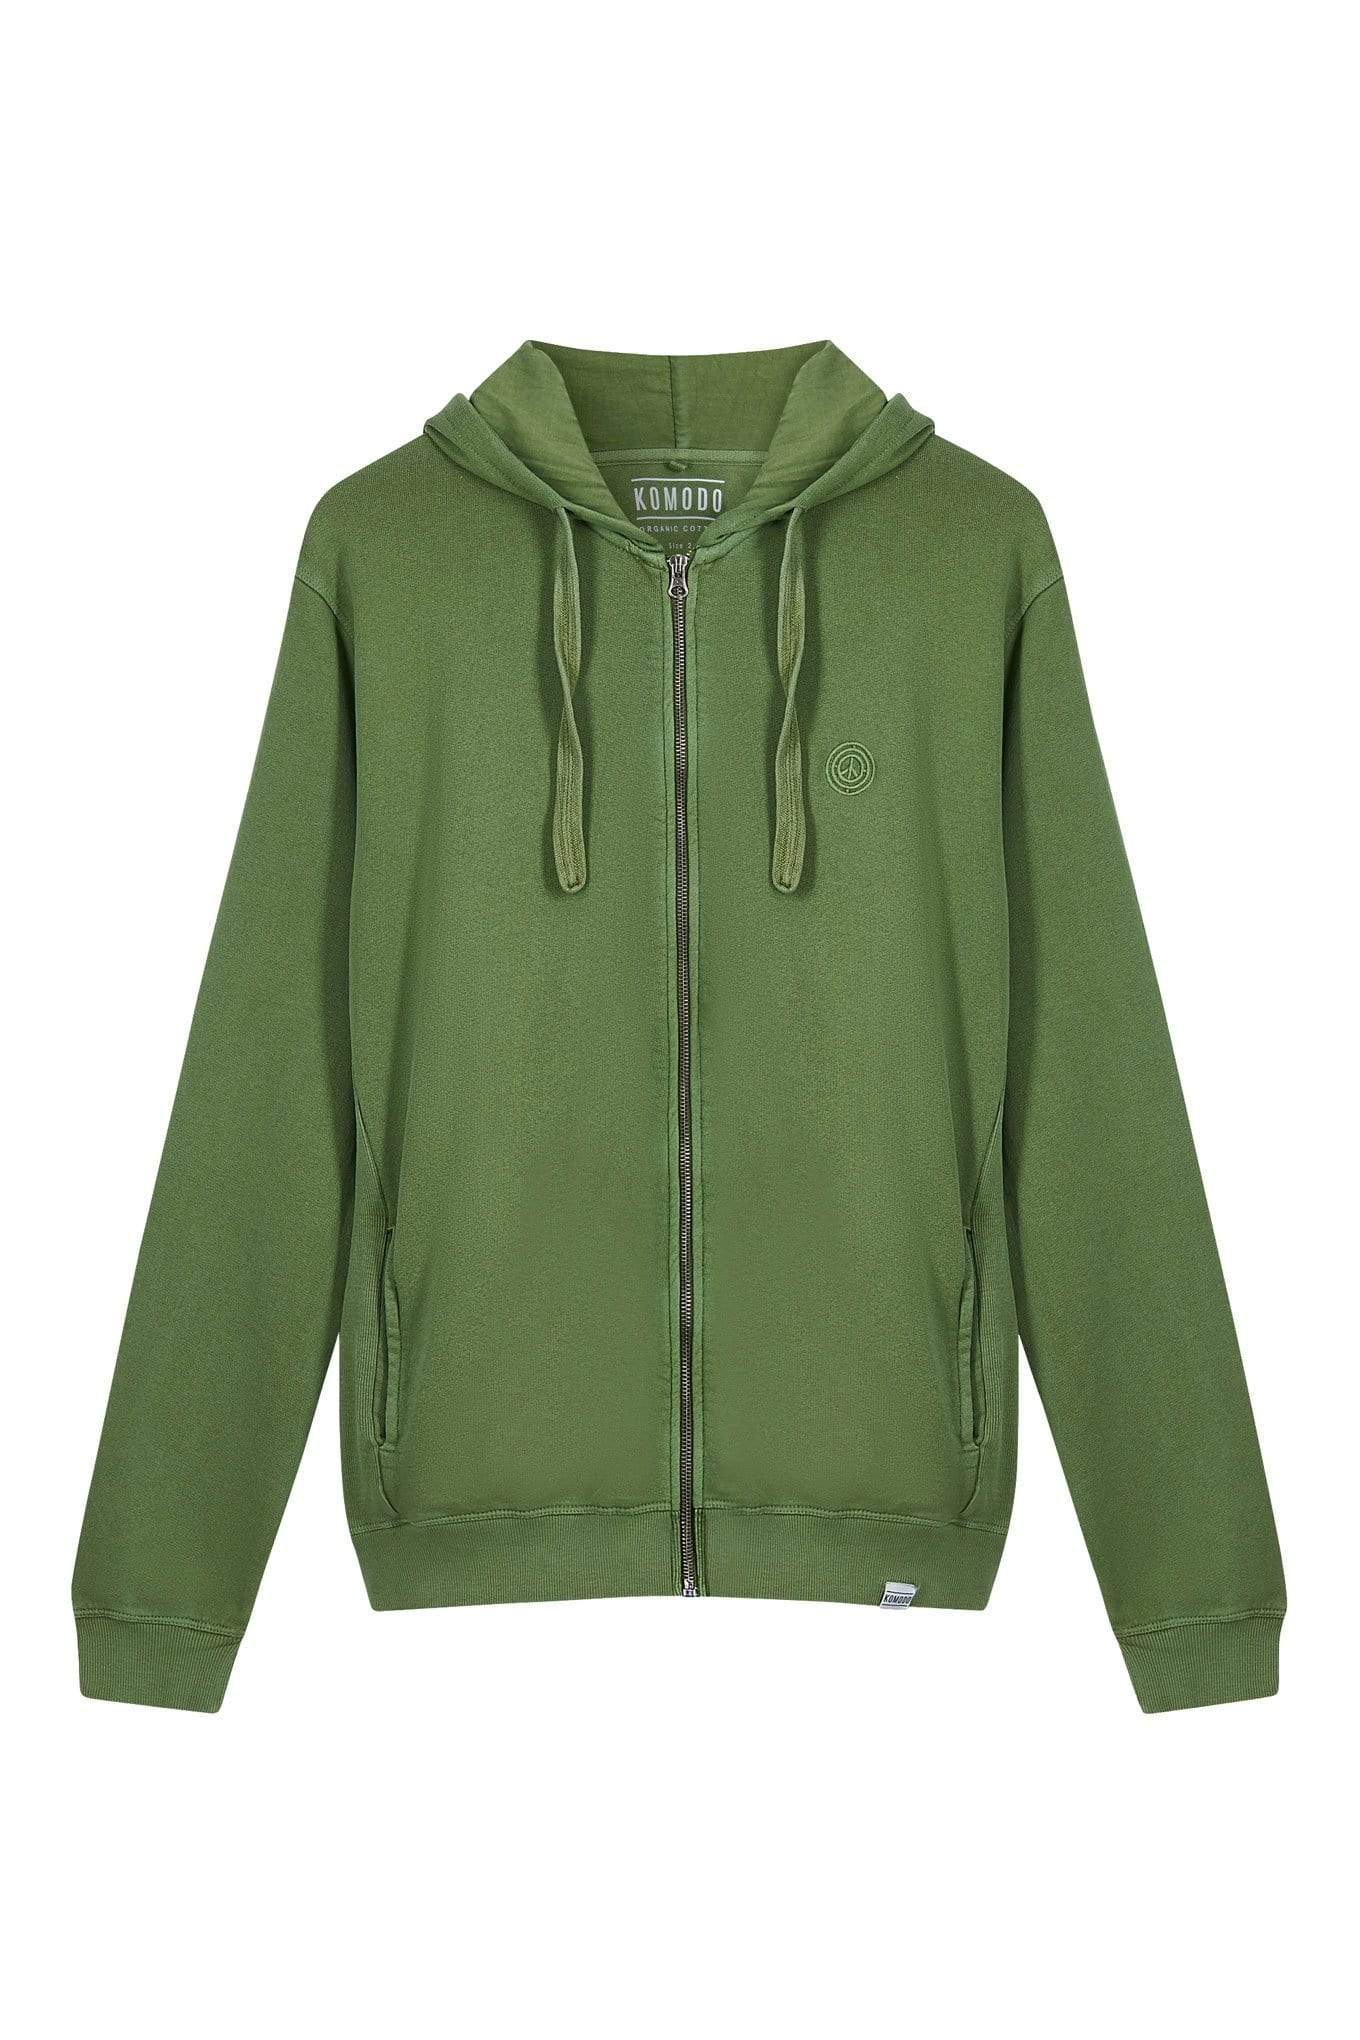 KOMODO Jumper APOLLO Mens - GOTS Organic Cotton Zip Hoodie Olive sustainable fashion ethical fashion